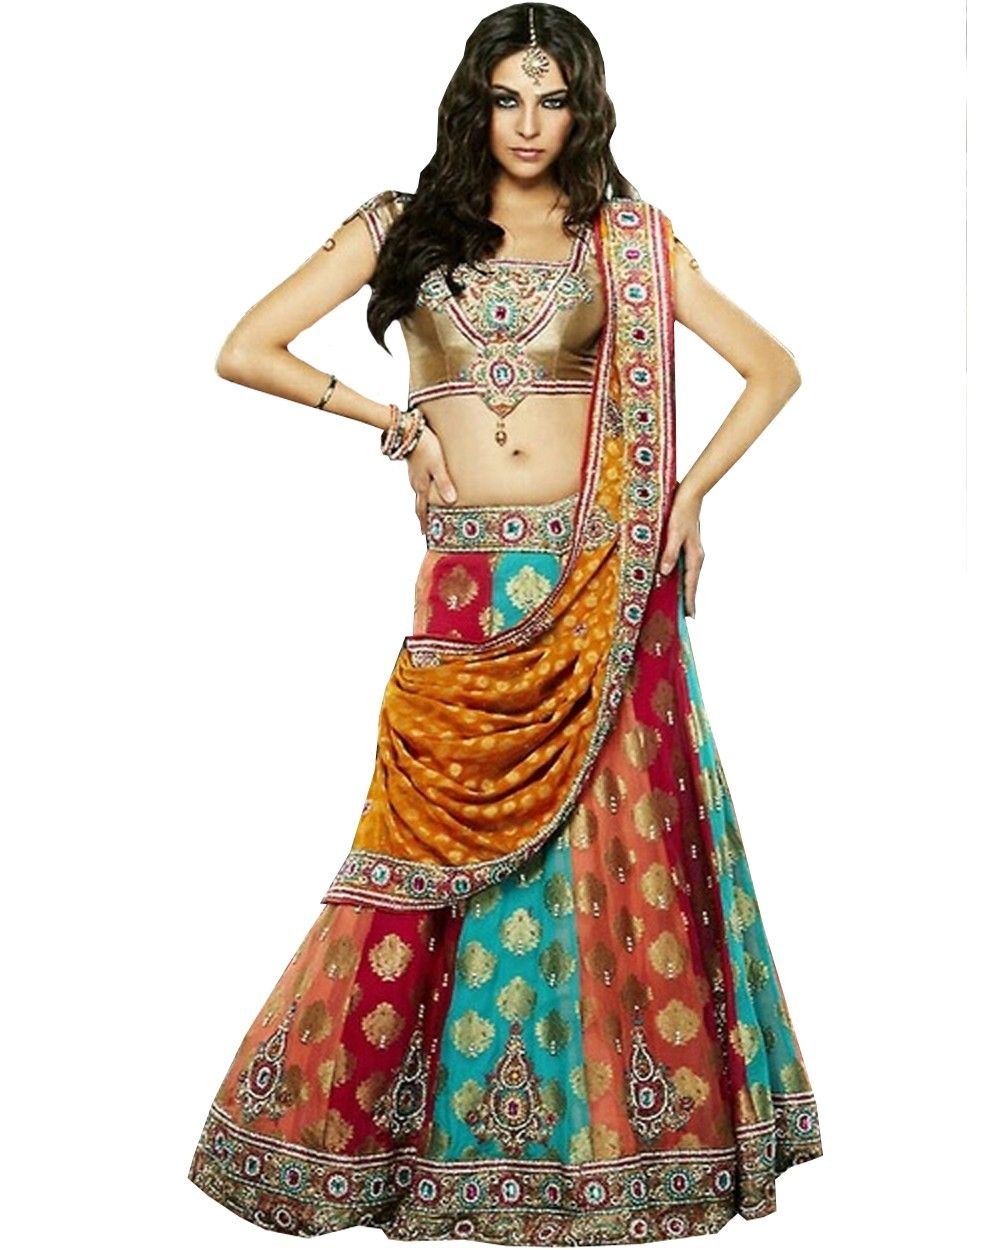 Captivating Elegant Bollywood Costumes   Google Search